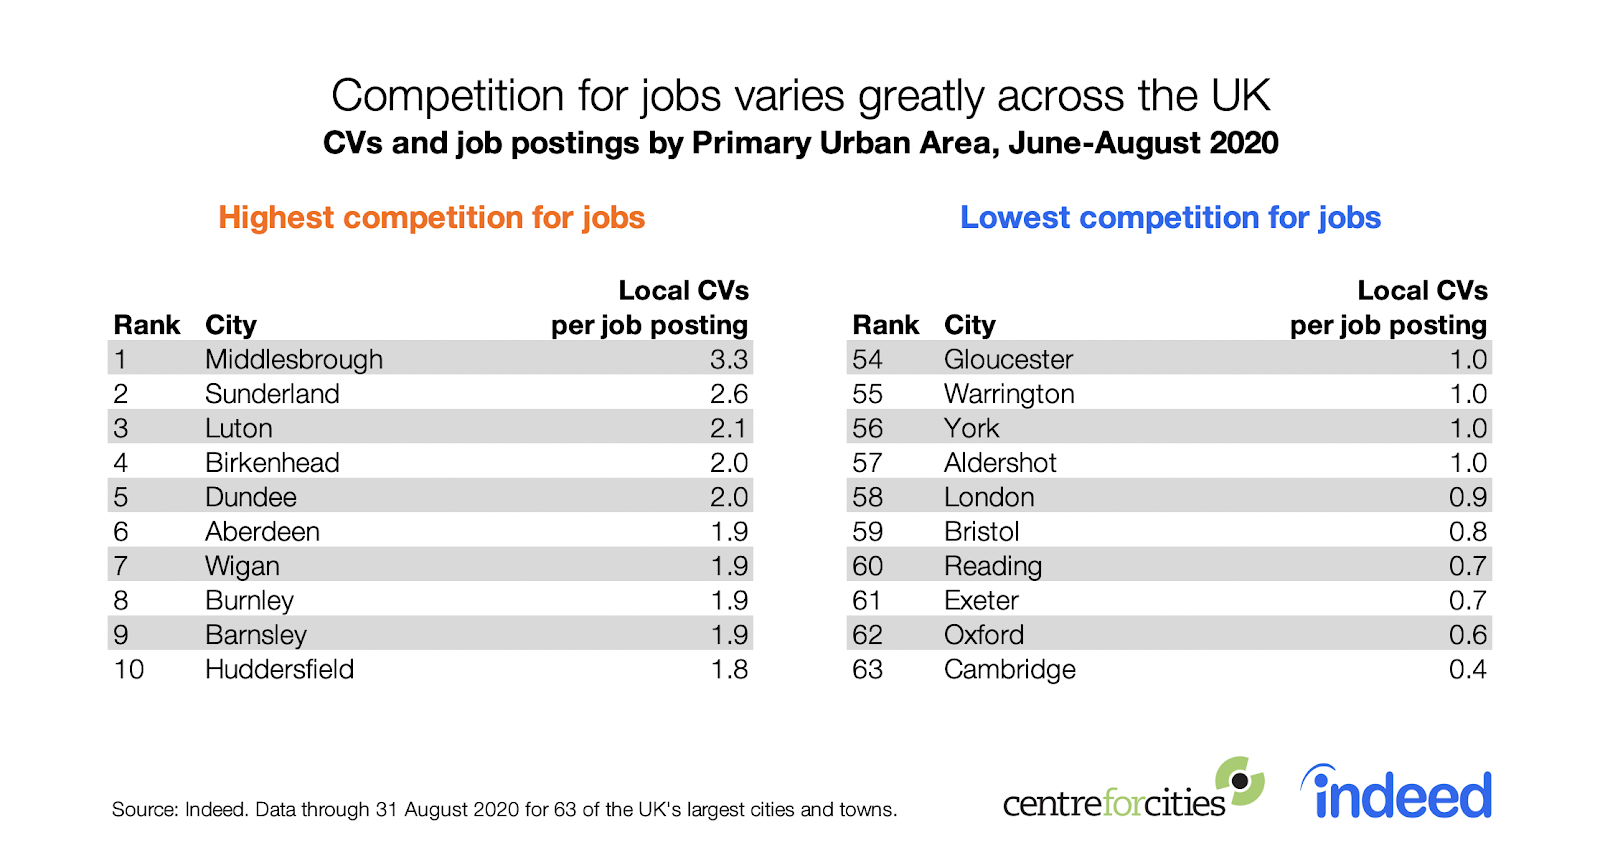 Table showing competition for jobs varies greatly across UK